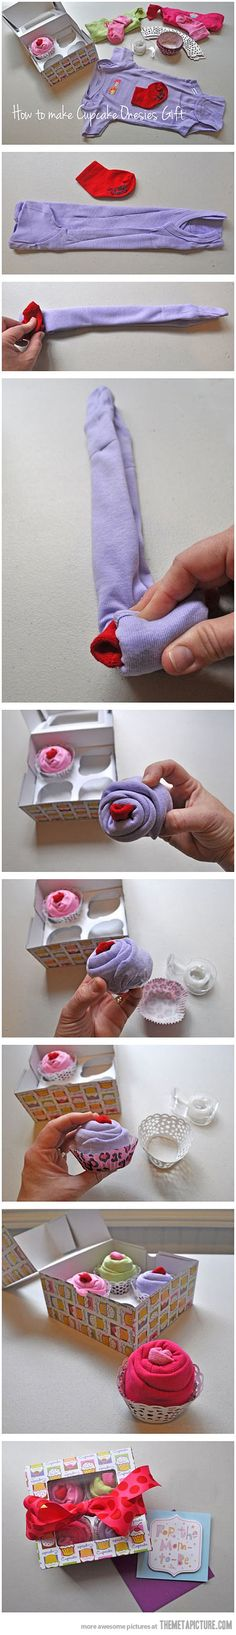 The best way to gift baby clothes... - The Meta Picture... This ones so cute, I'm waiting for someone to get pregnant just so I can give them this as a gift :)